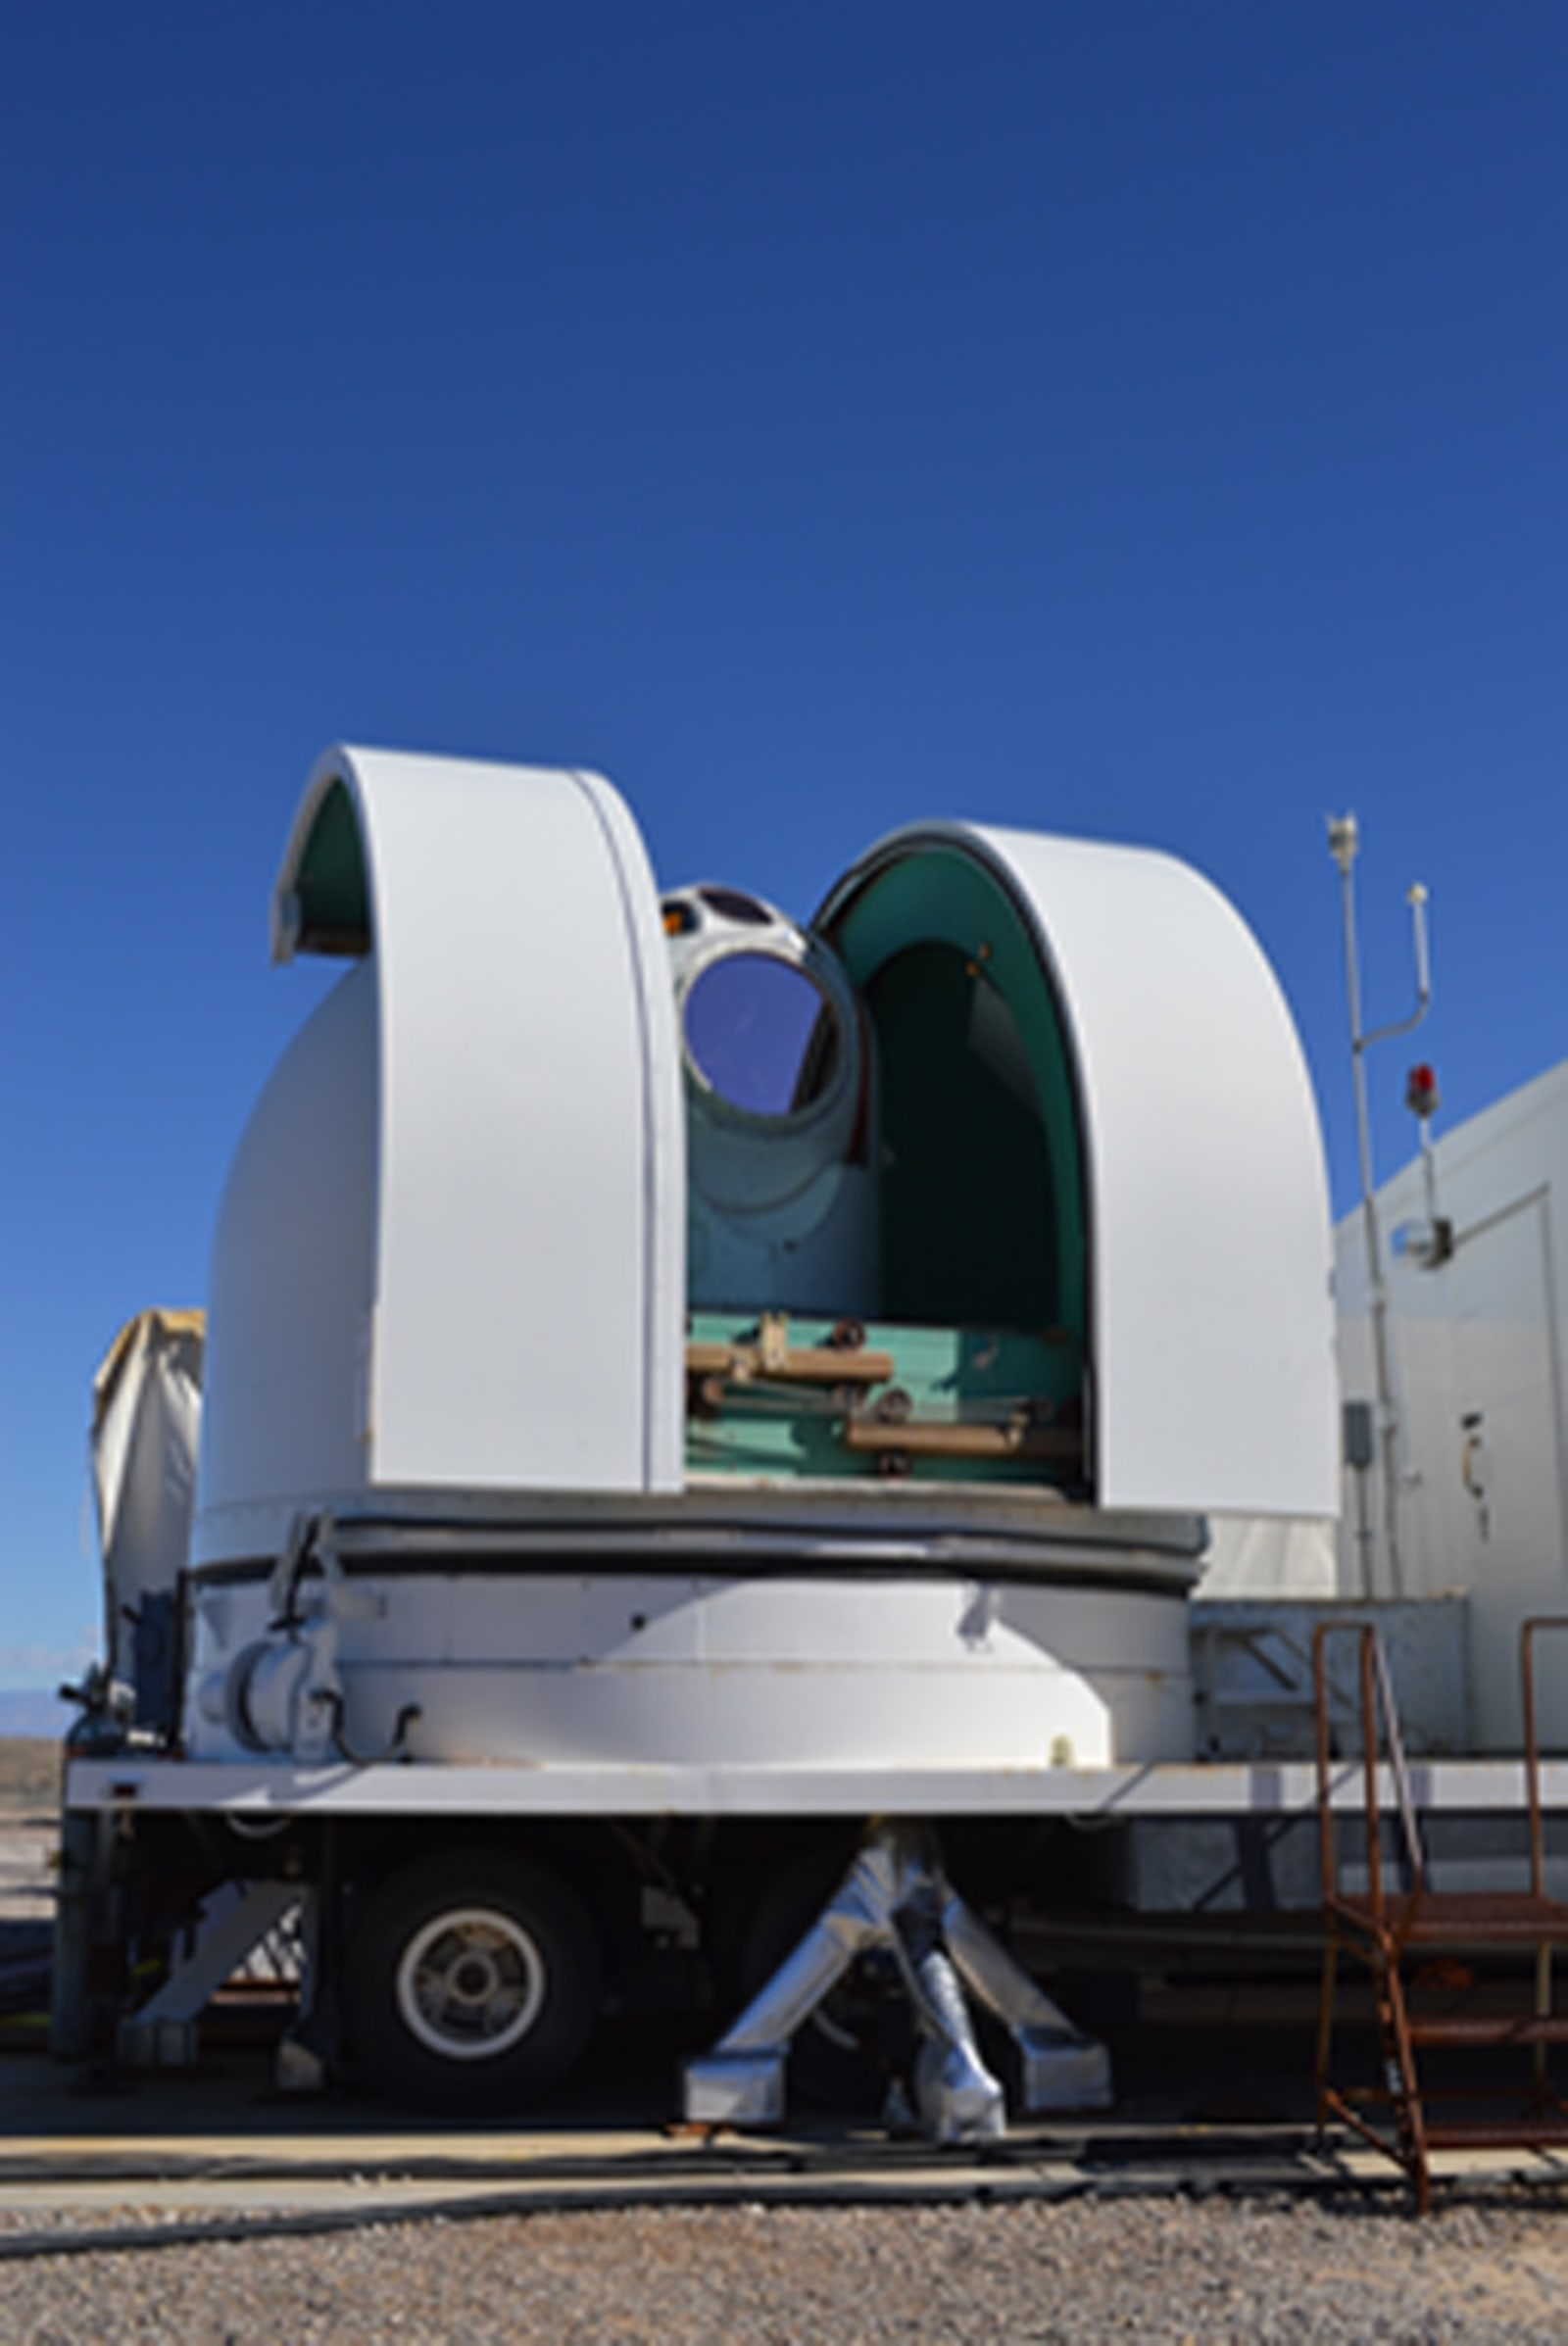 Ground-based SHiELD laser defense weapon